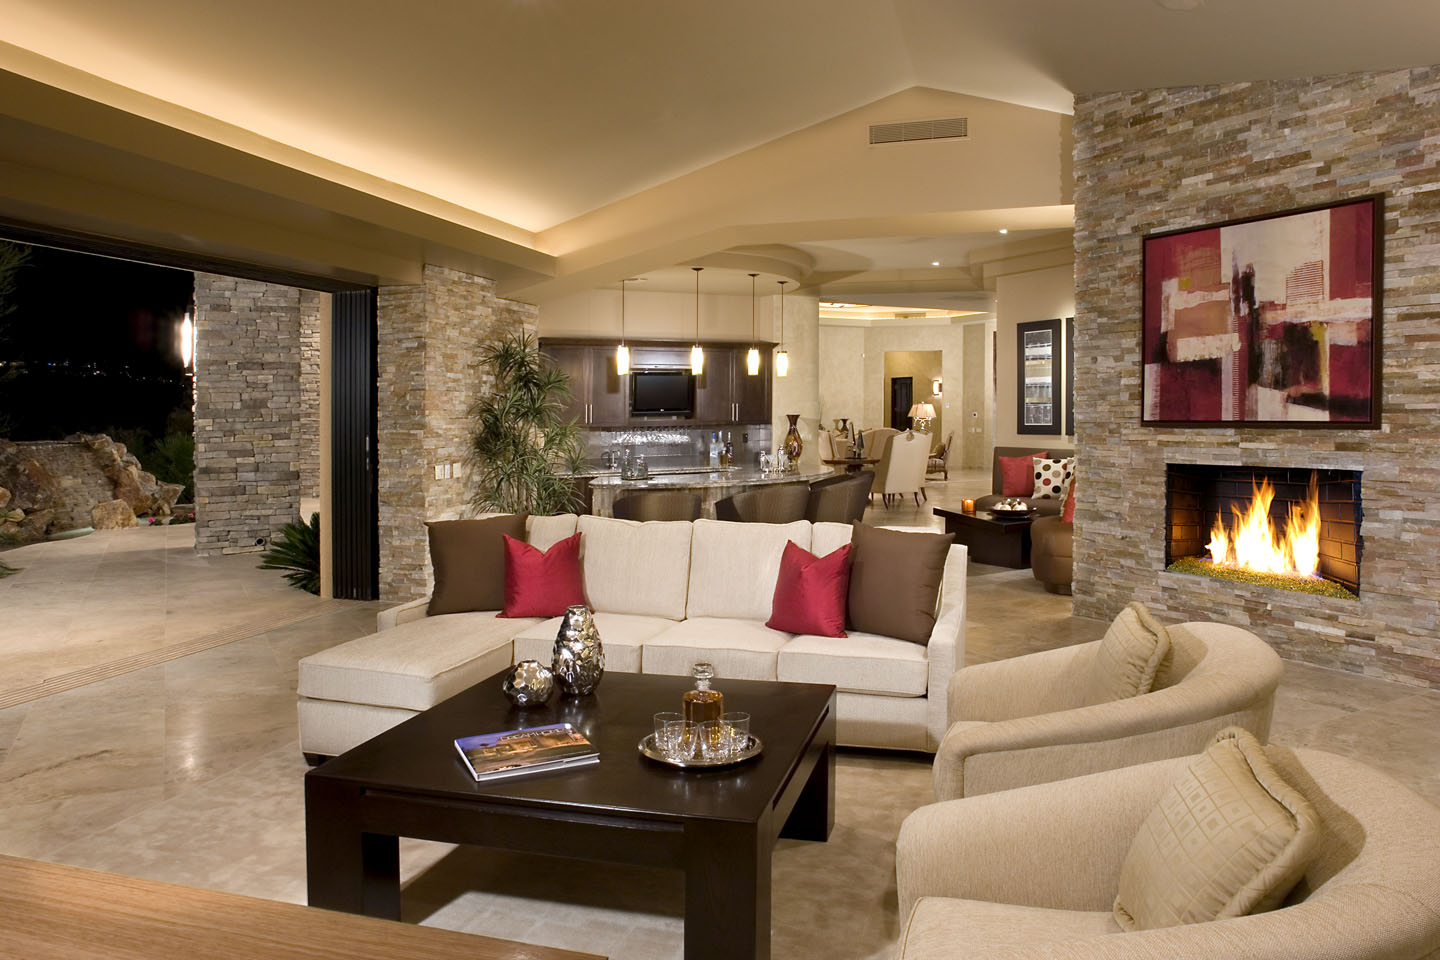 Rock your home with stone interior accents for Beautiful interior designs for small houses